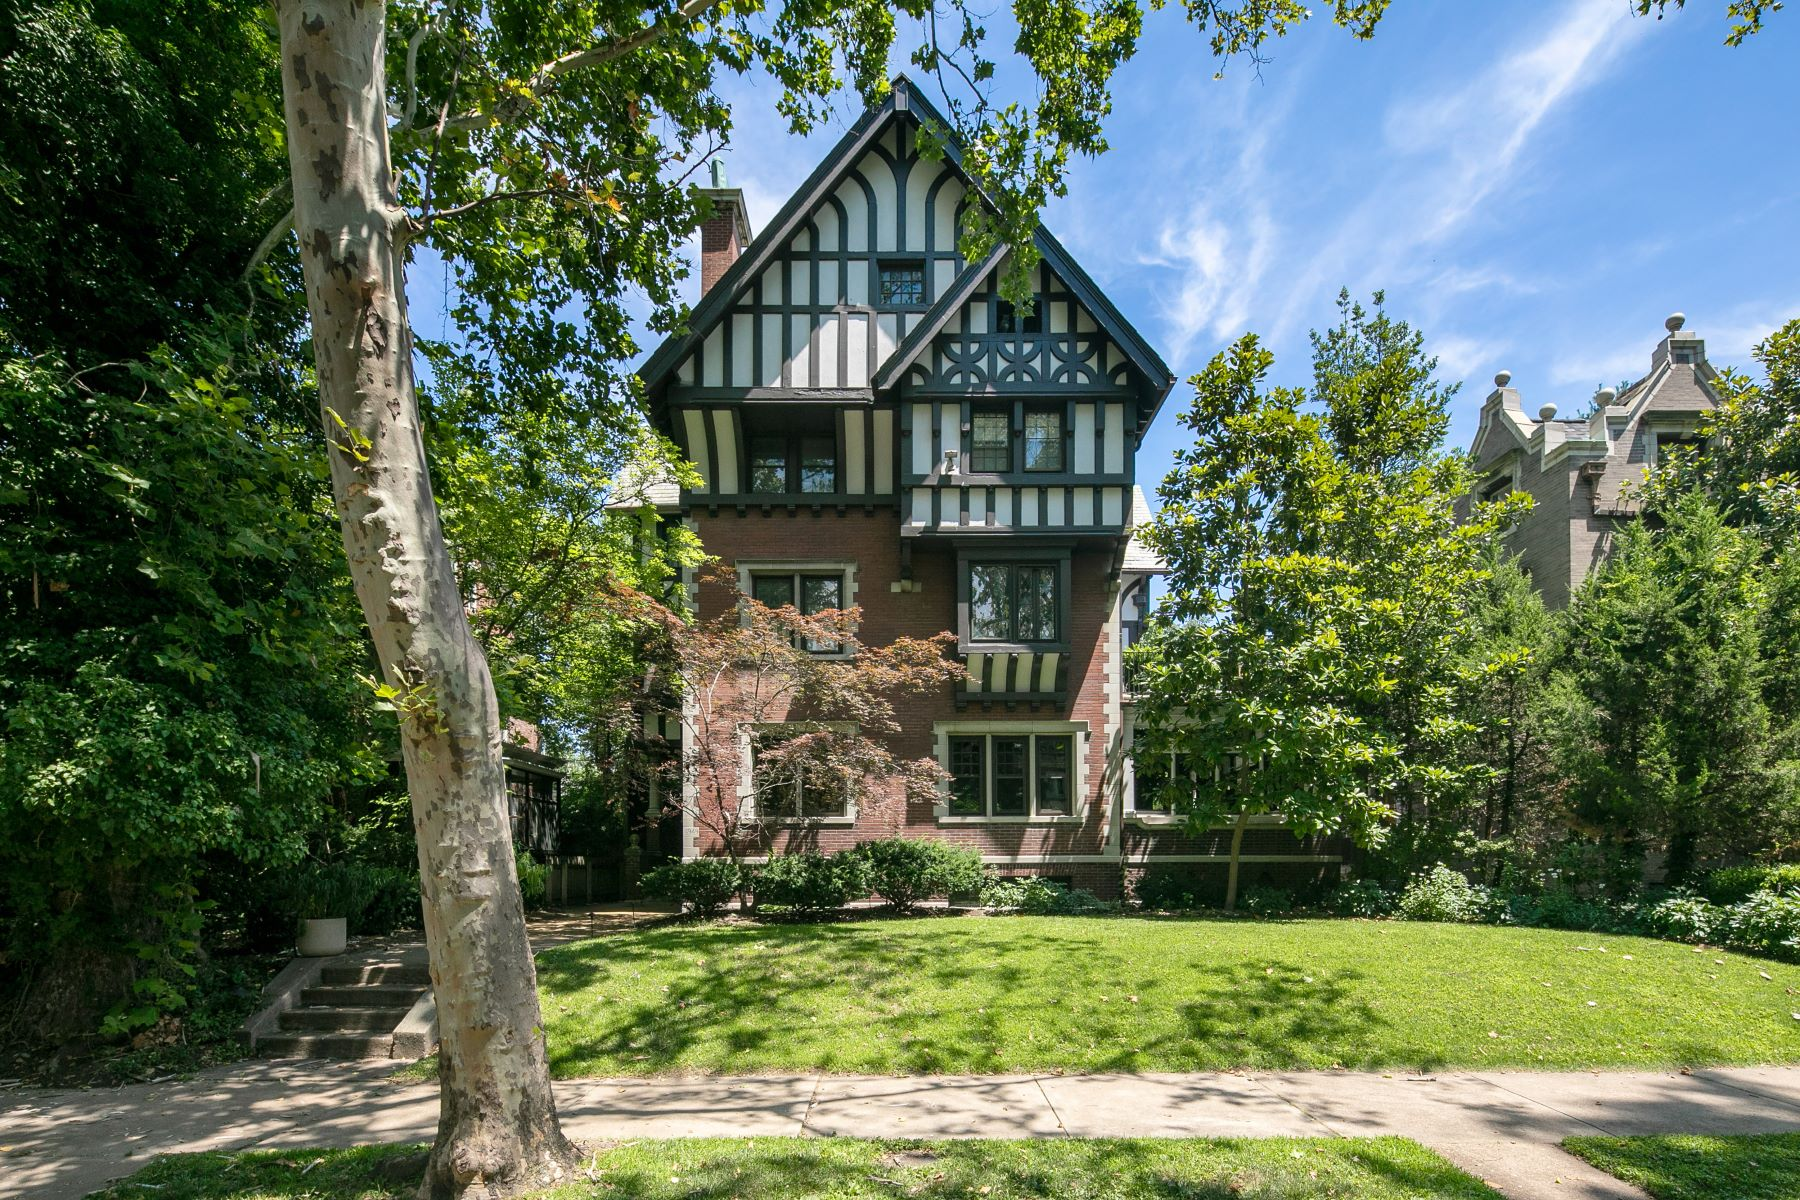 Property for Sale at A striking blend of original historic character and modern renovations! 4949 Pershing Place St. Louis, Missouri 63108 United States